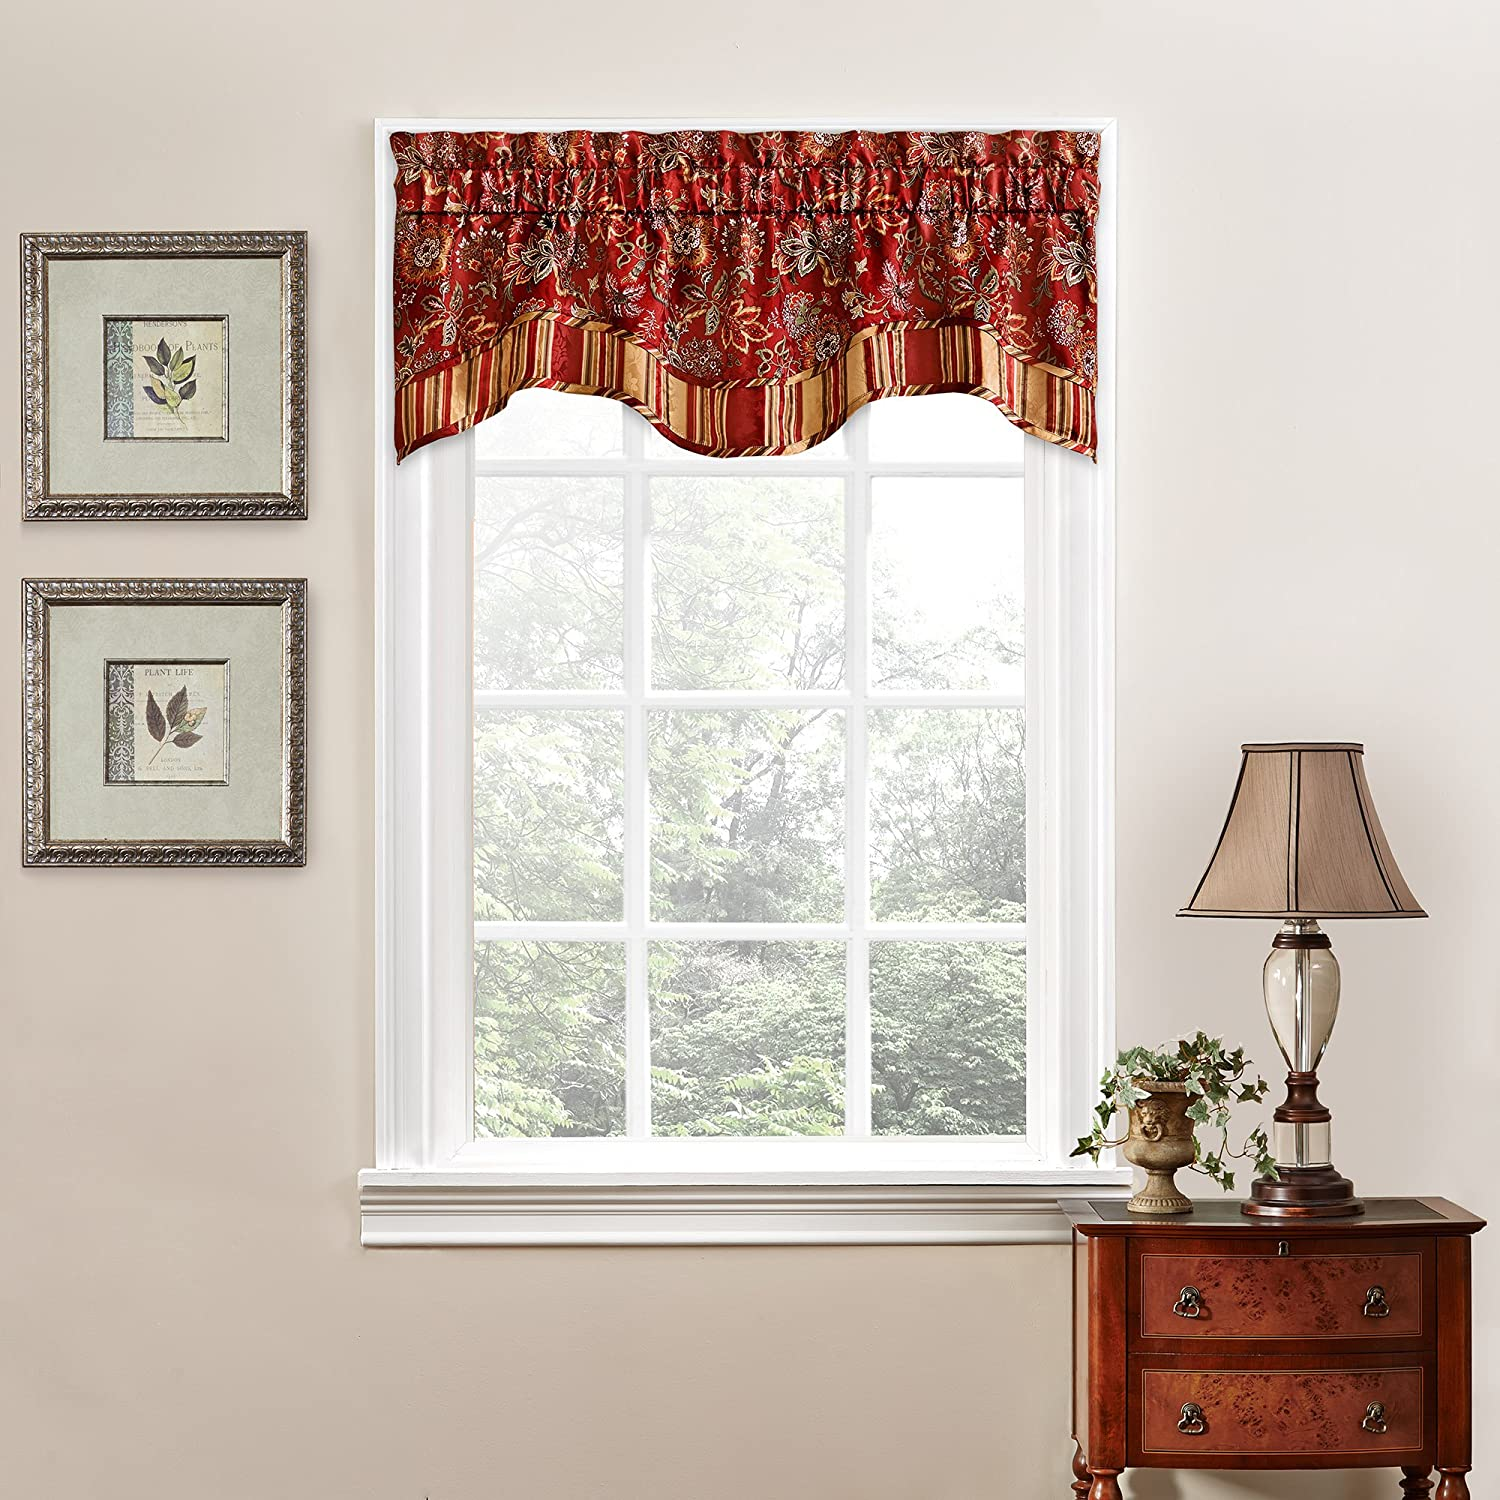 Floral window treatments sale ease bedding with style for Valance curtains for kitchen